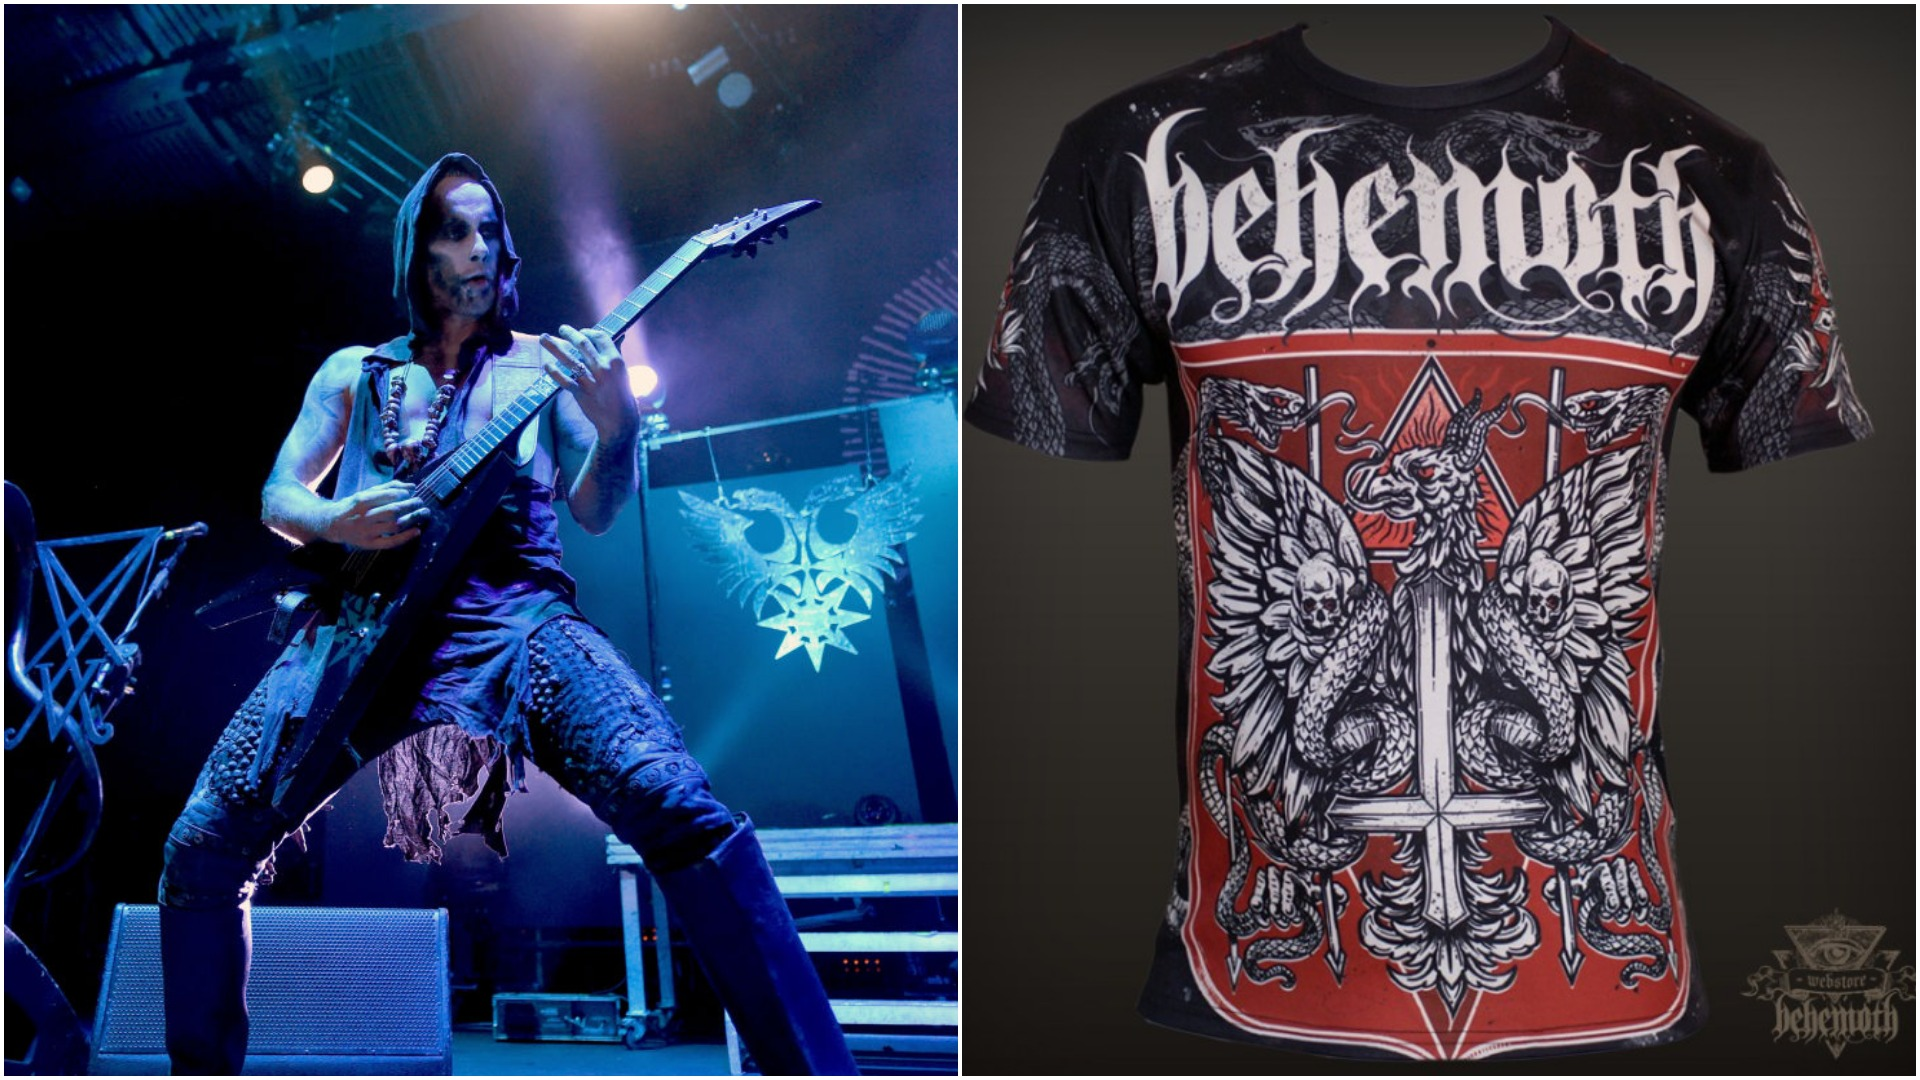 hot water music shirt marine electrical wiring diagram behemoth 39s nergal questioned by polish authorities over